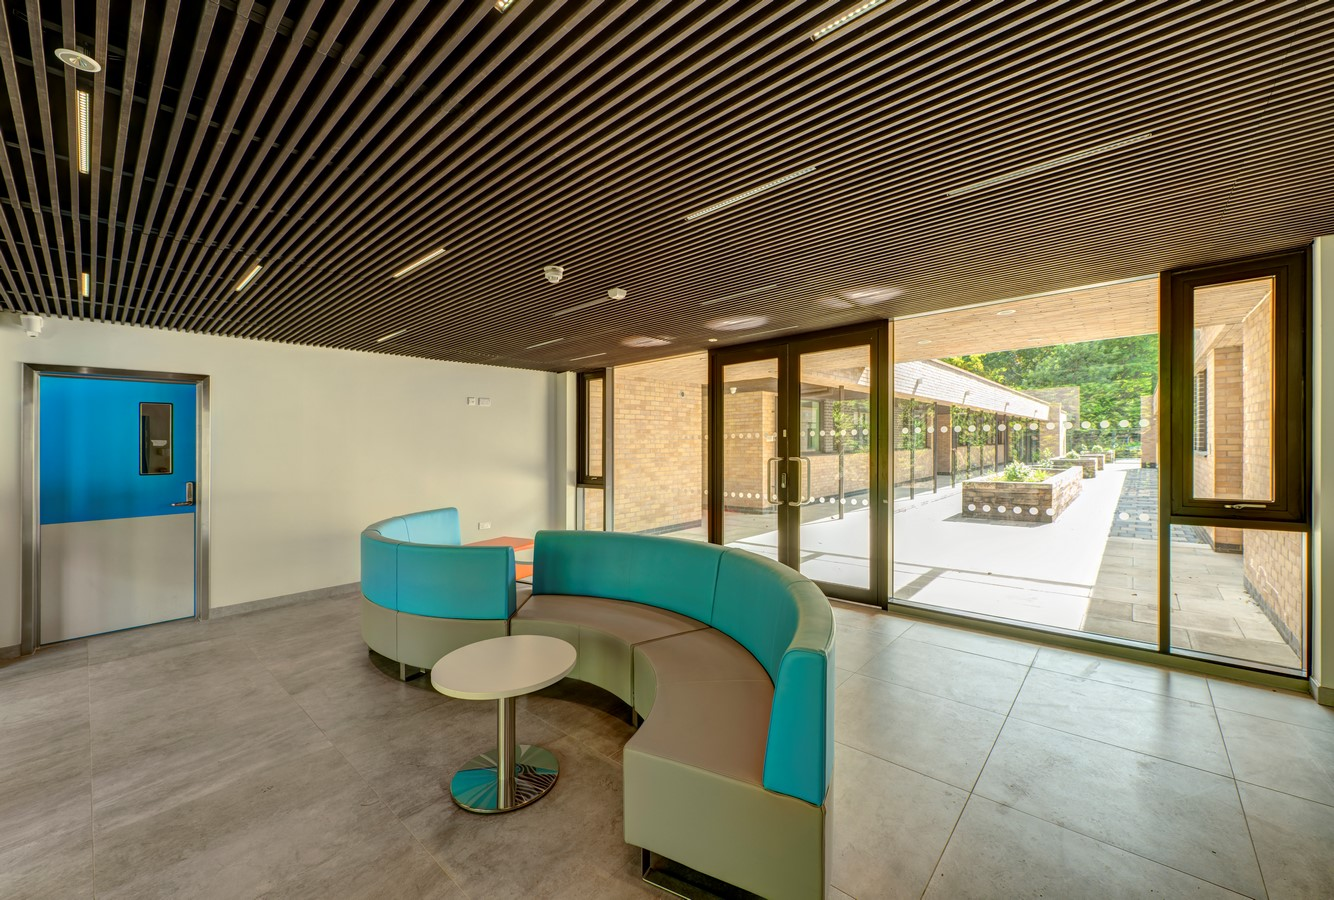 Battersea Dogs & Cats Home by Jonathan Clark Architects - Sheet2